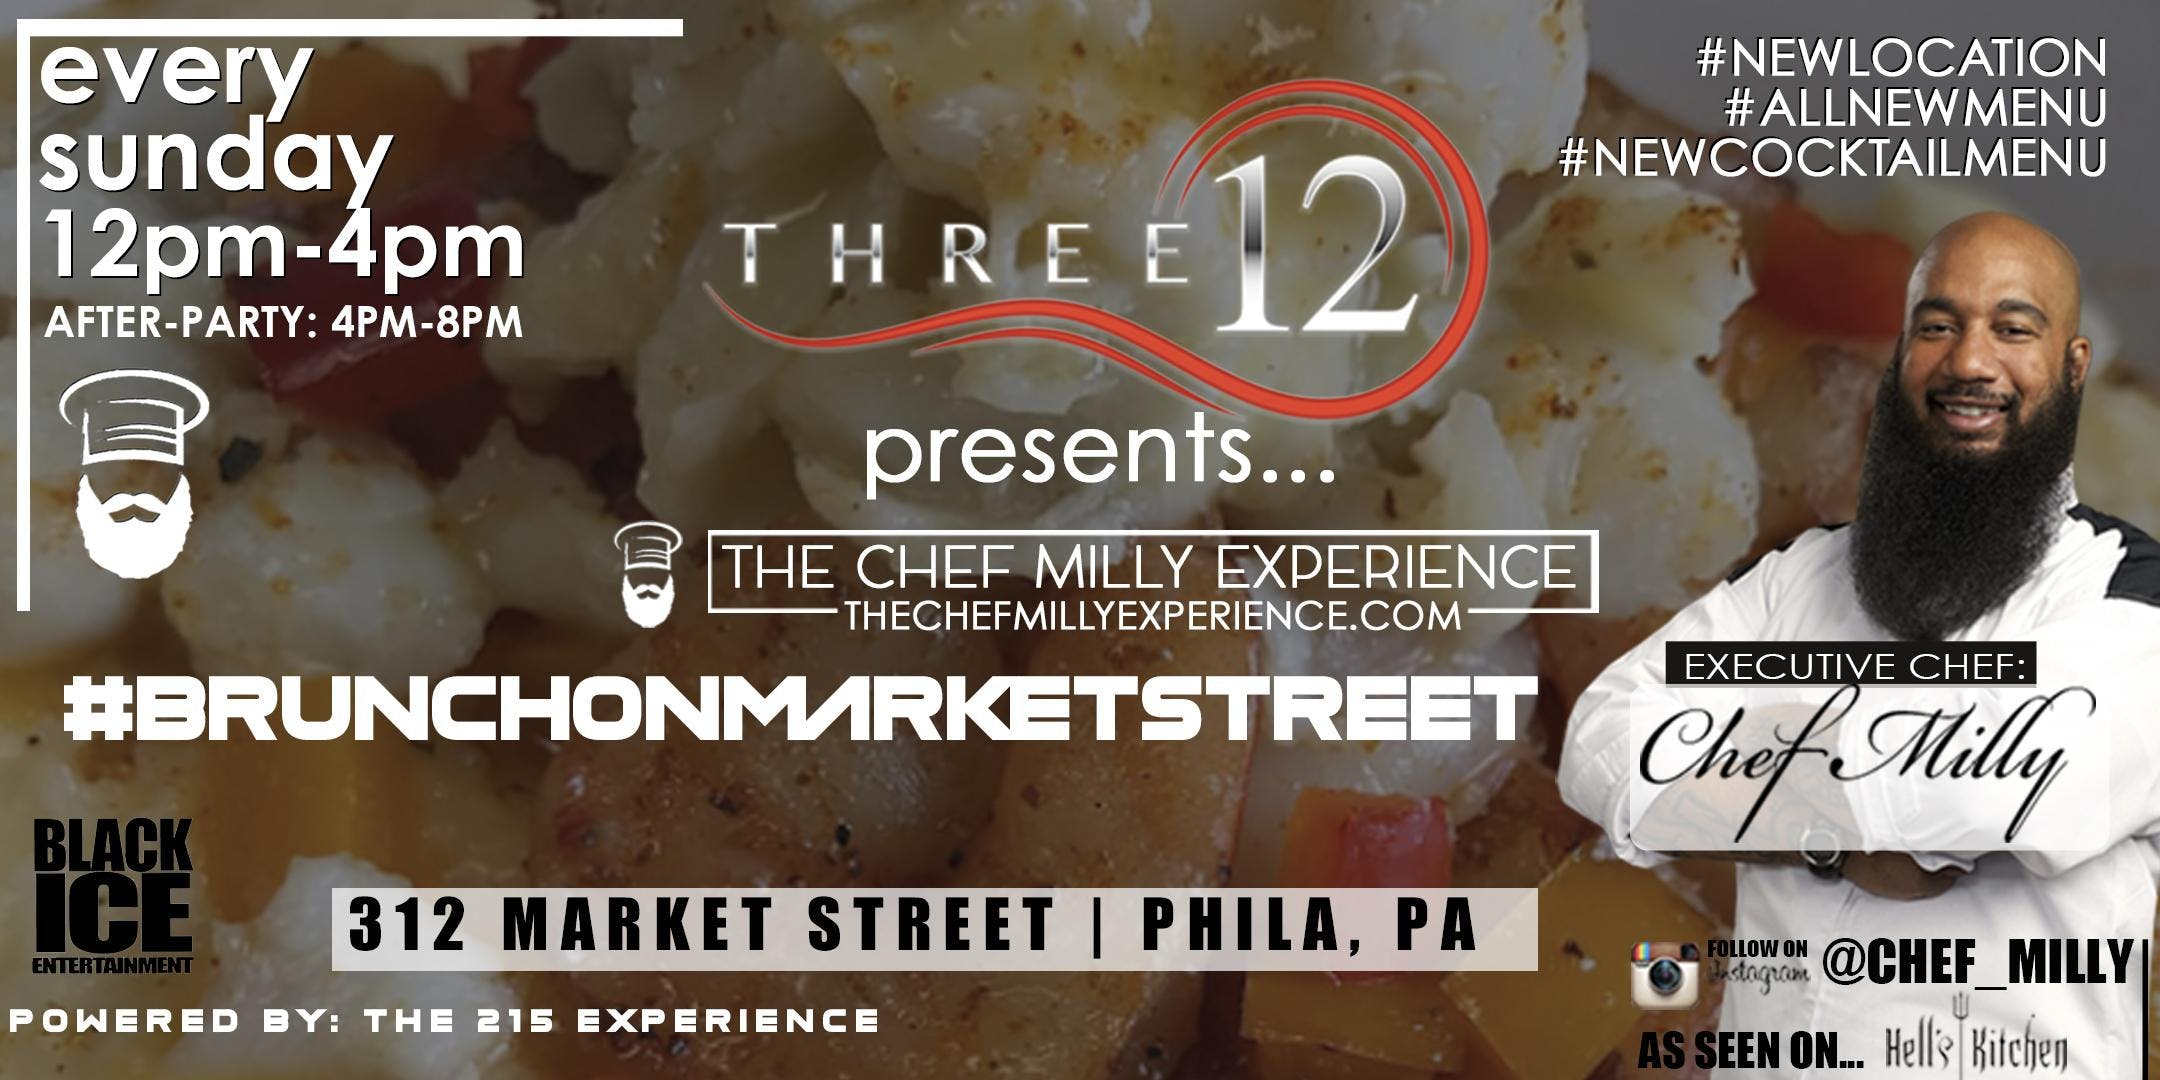 312 SPORTSLOUNGE PRESENTS: THE CHEF MILLY EXPERIENCE #BRUNCHONMARKETSTREET